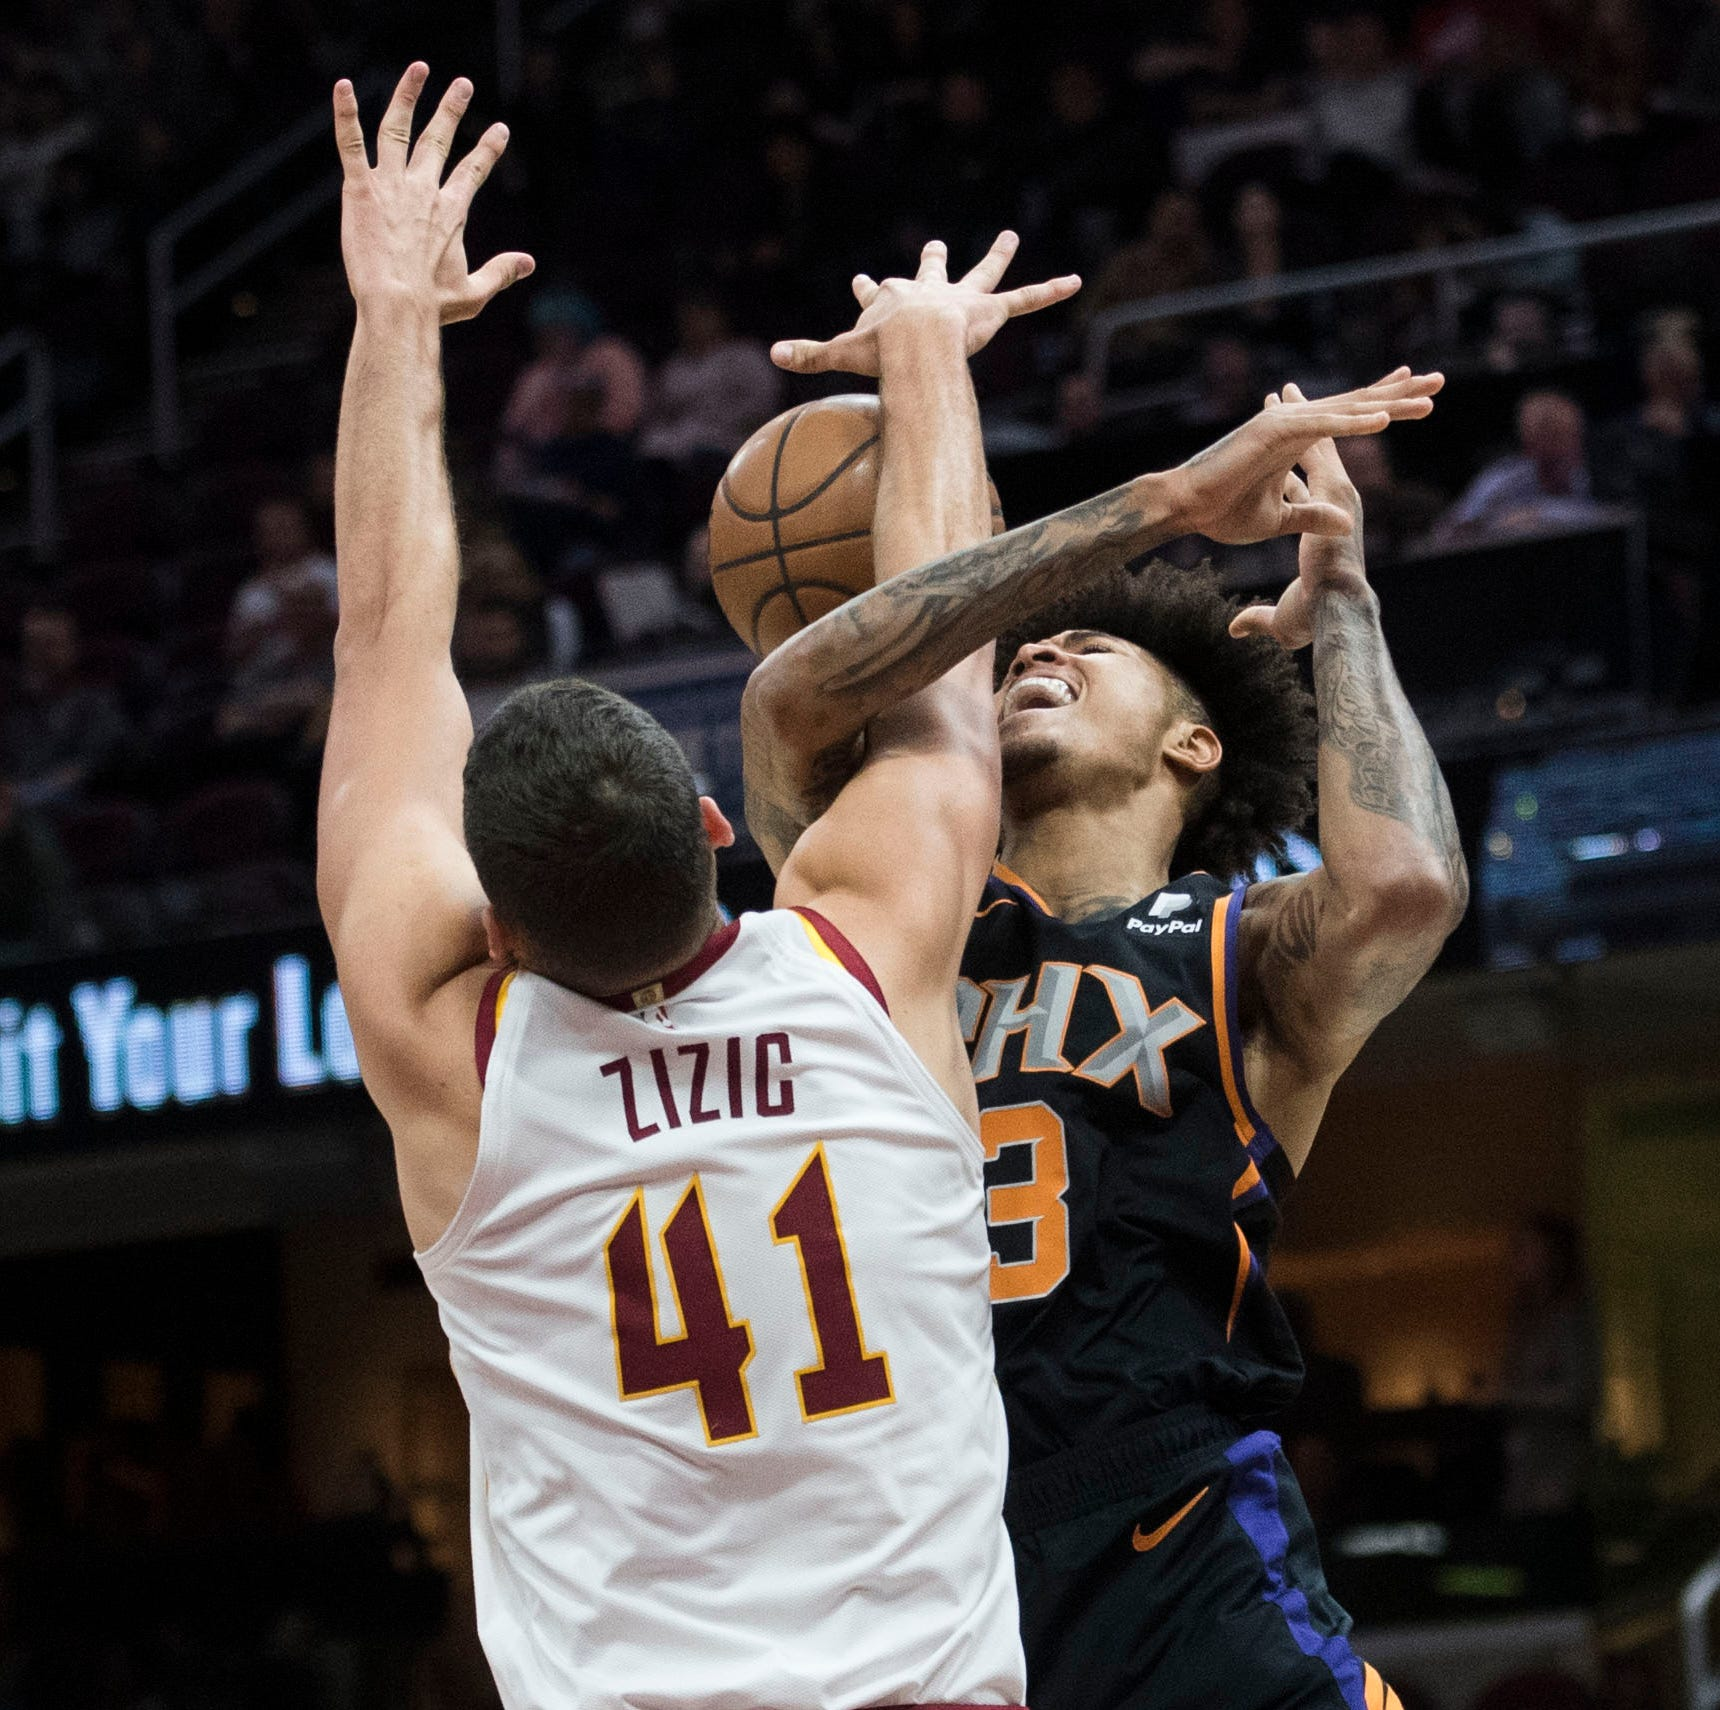 Suns' losing streak hits 16 in Cleveland as team struggles with identity